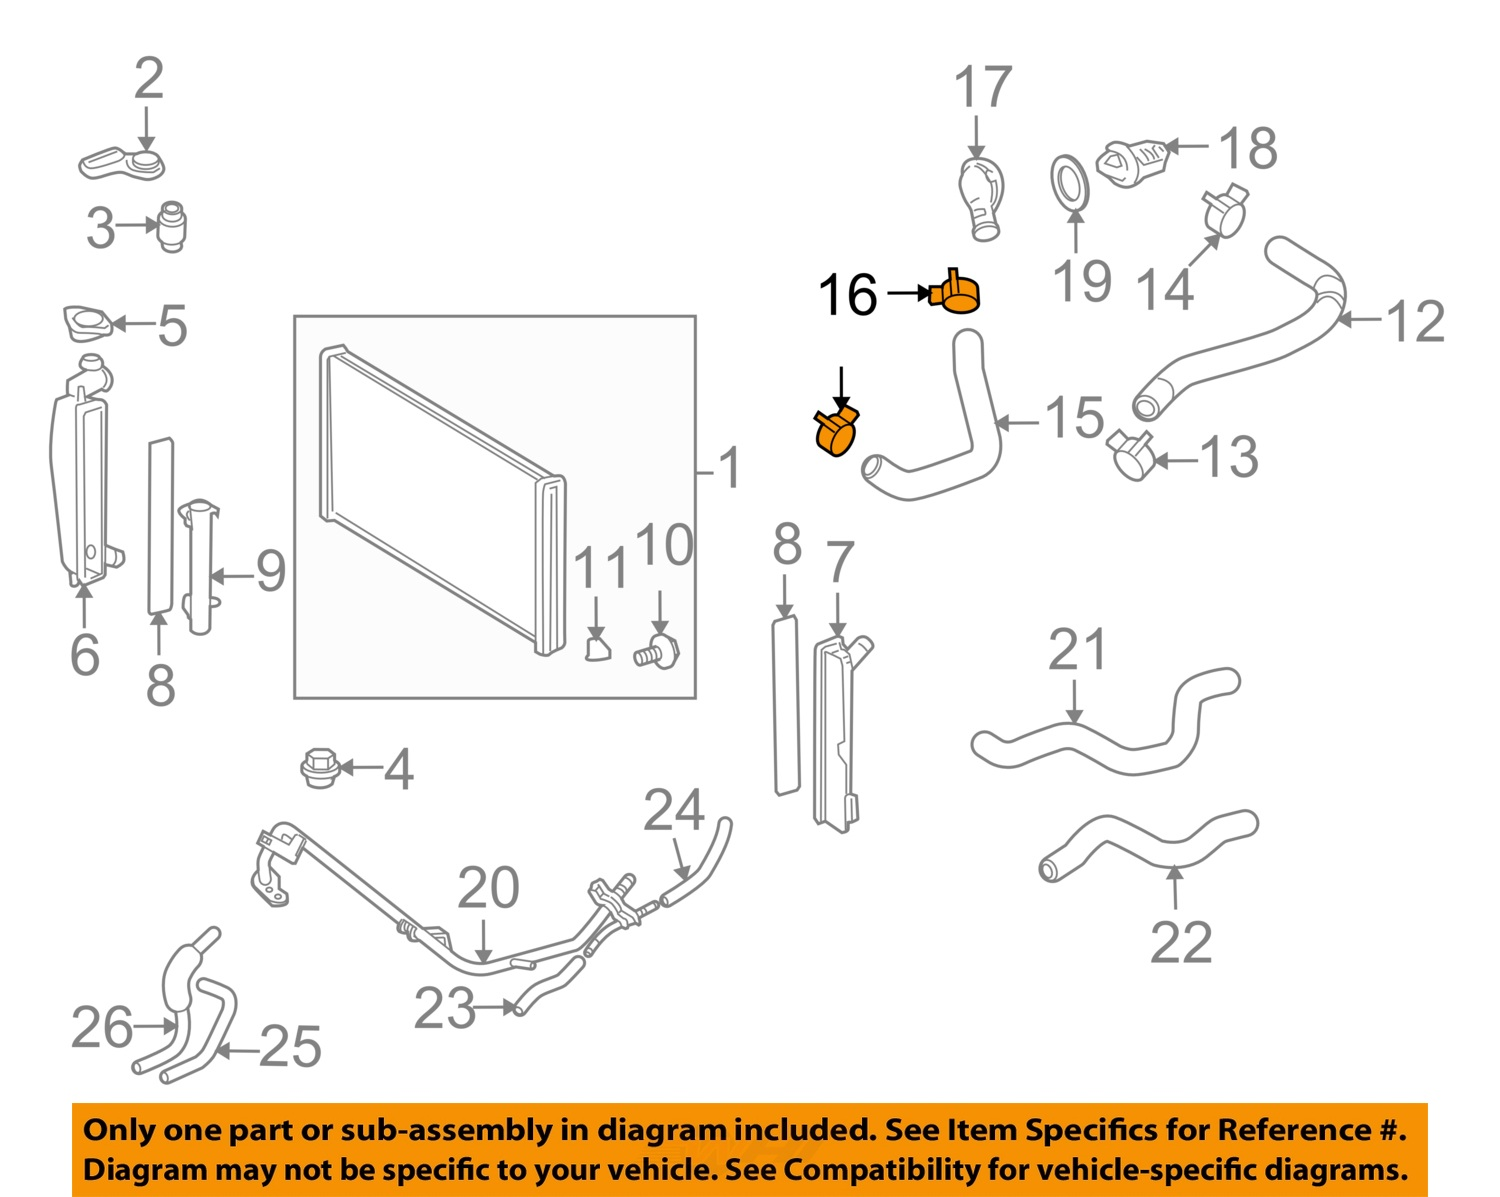 hight resolution of  16 on diagram only genuine oe factory original item